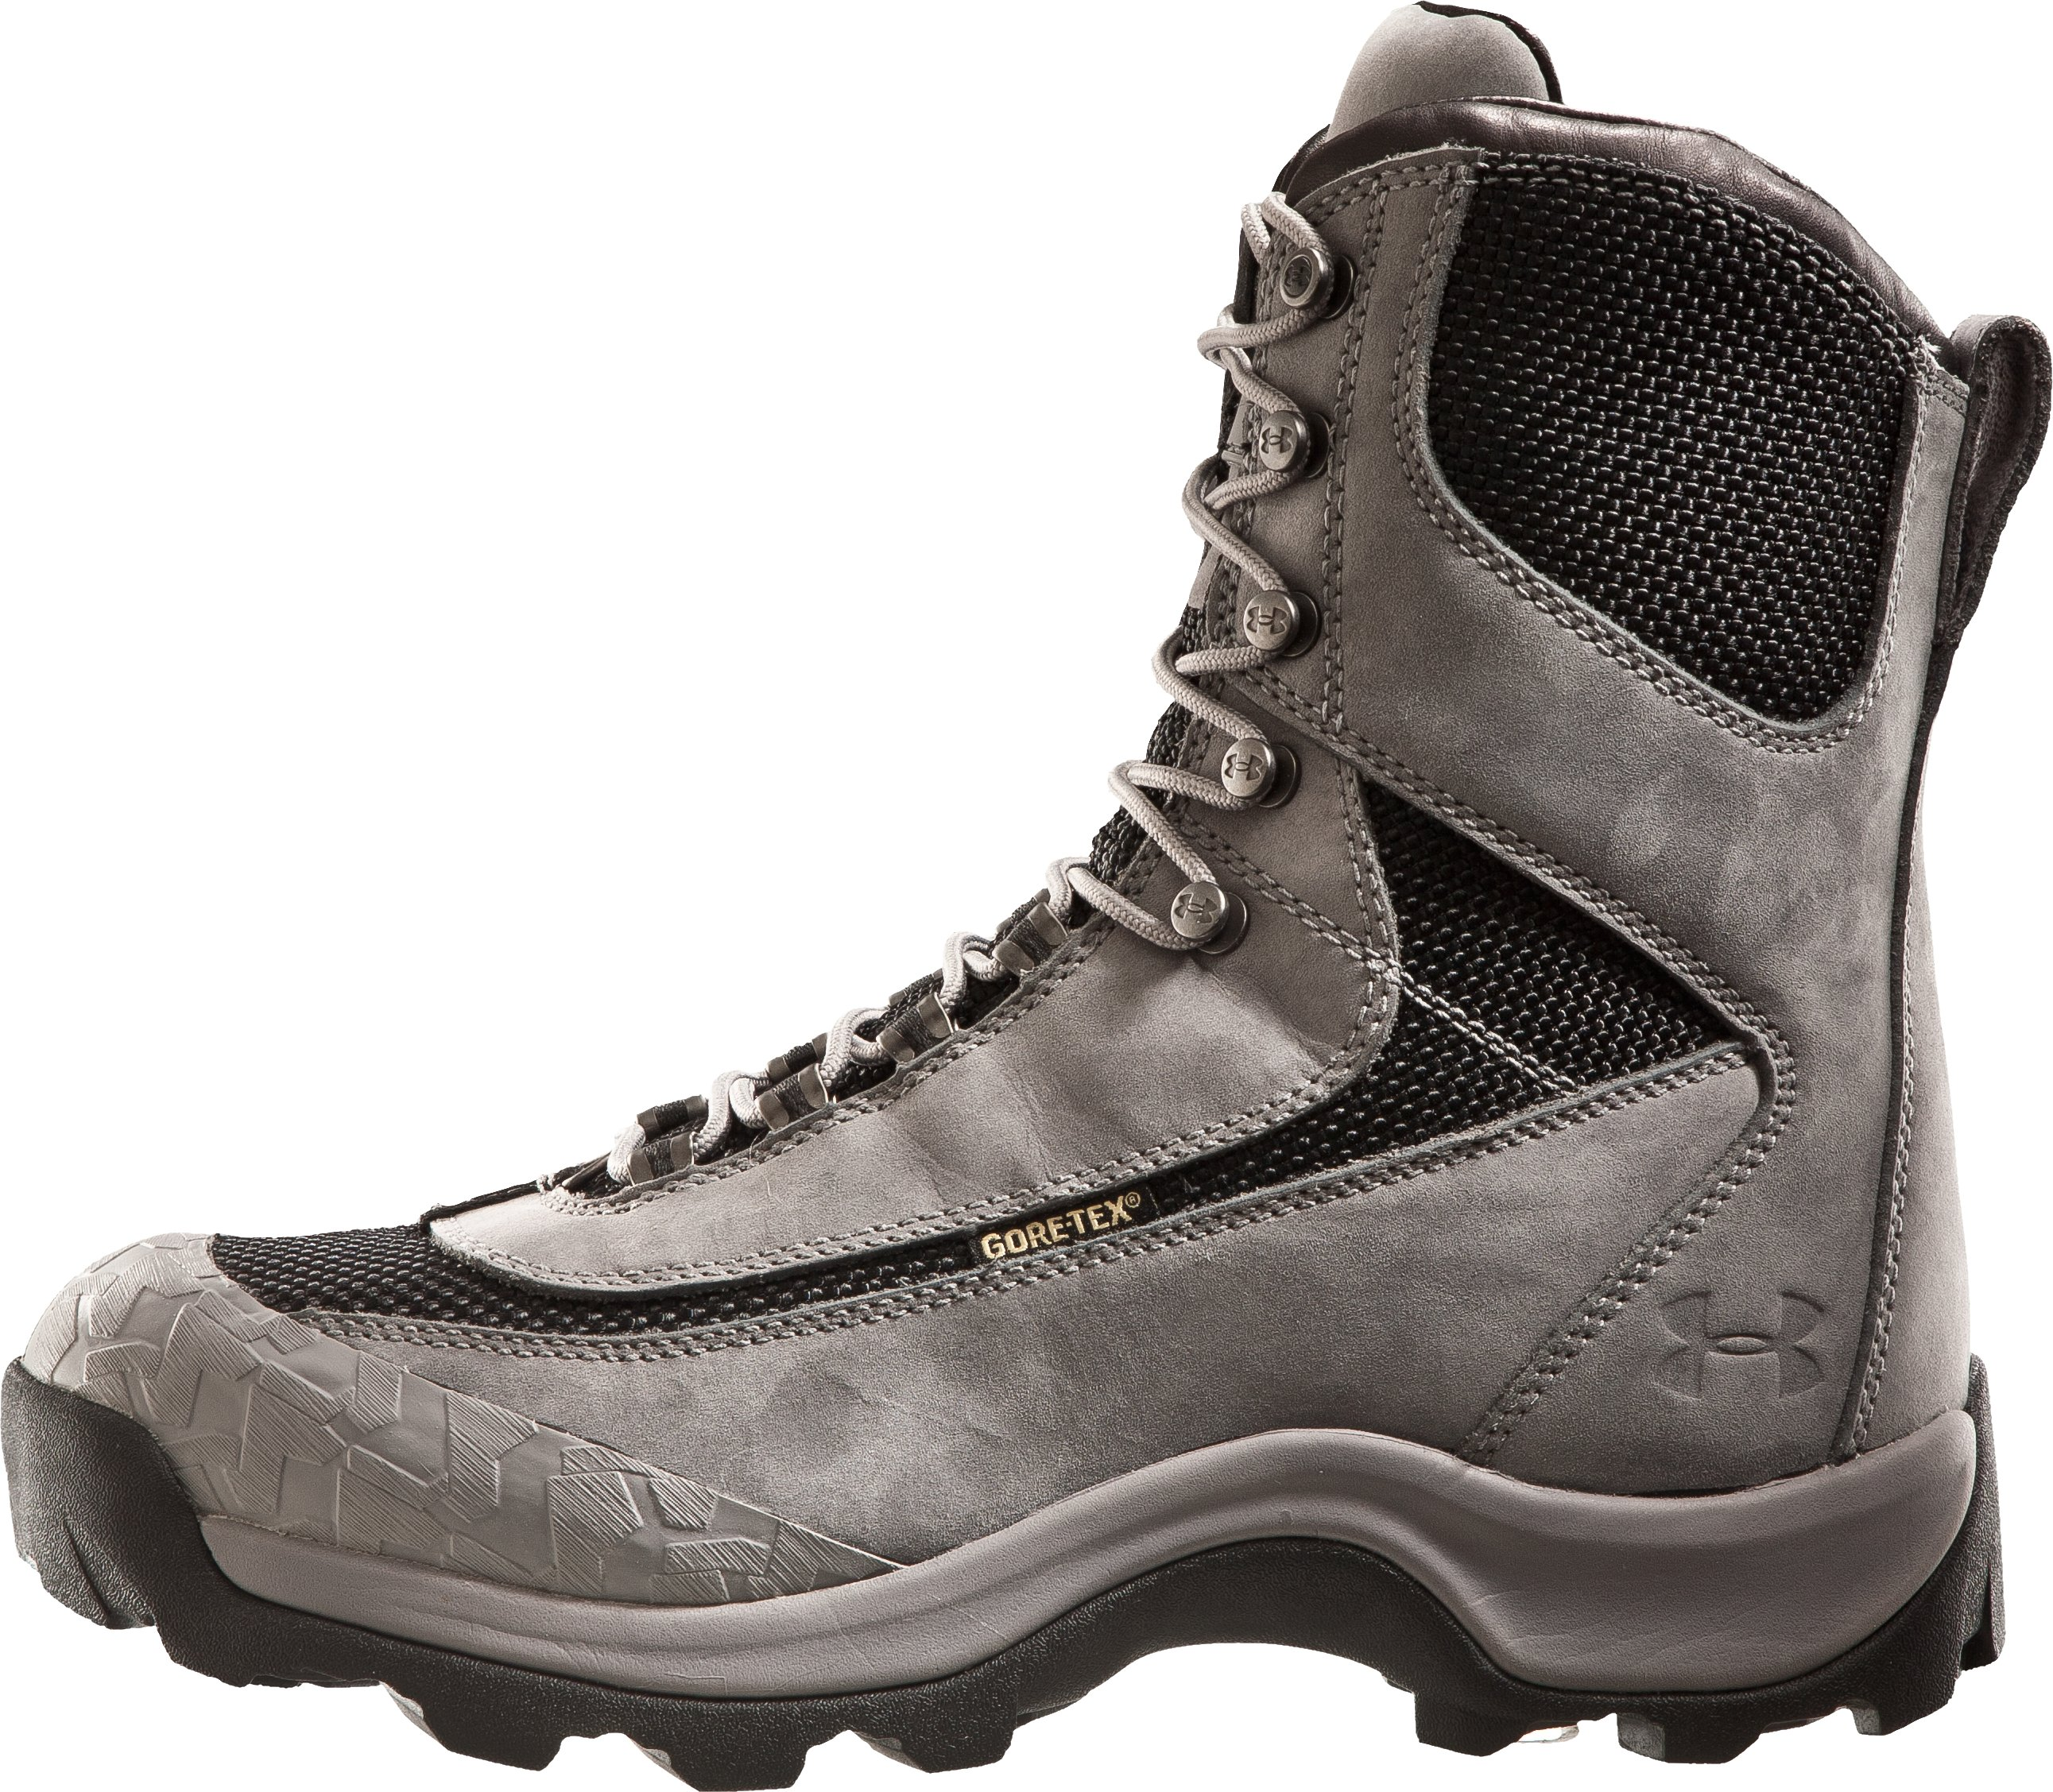 "Men's Ridge Reaper™ 8.5"" Hunting Boots, Steel, zoomed image"